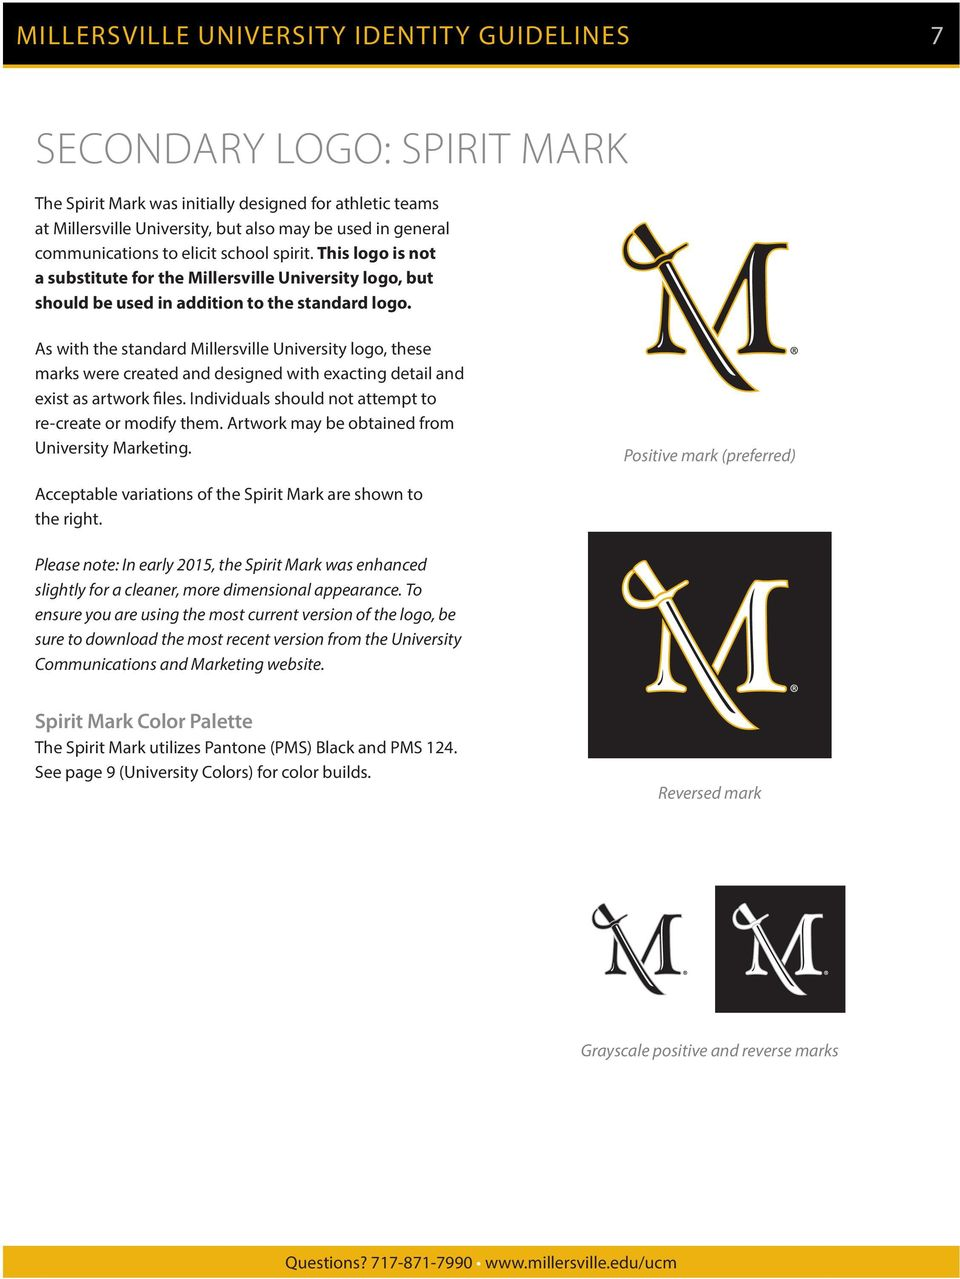 As with the standard Millersville University logo, these marks were created and designed with exacting detail and exist as artwork files. Individuals should not attempt to re-create or modify them.